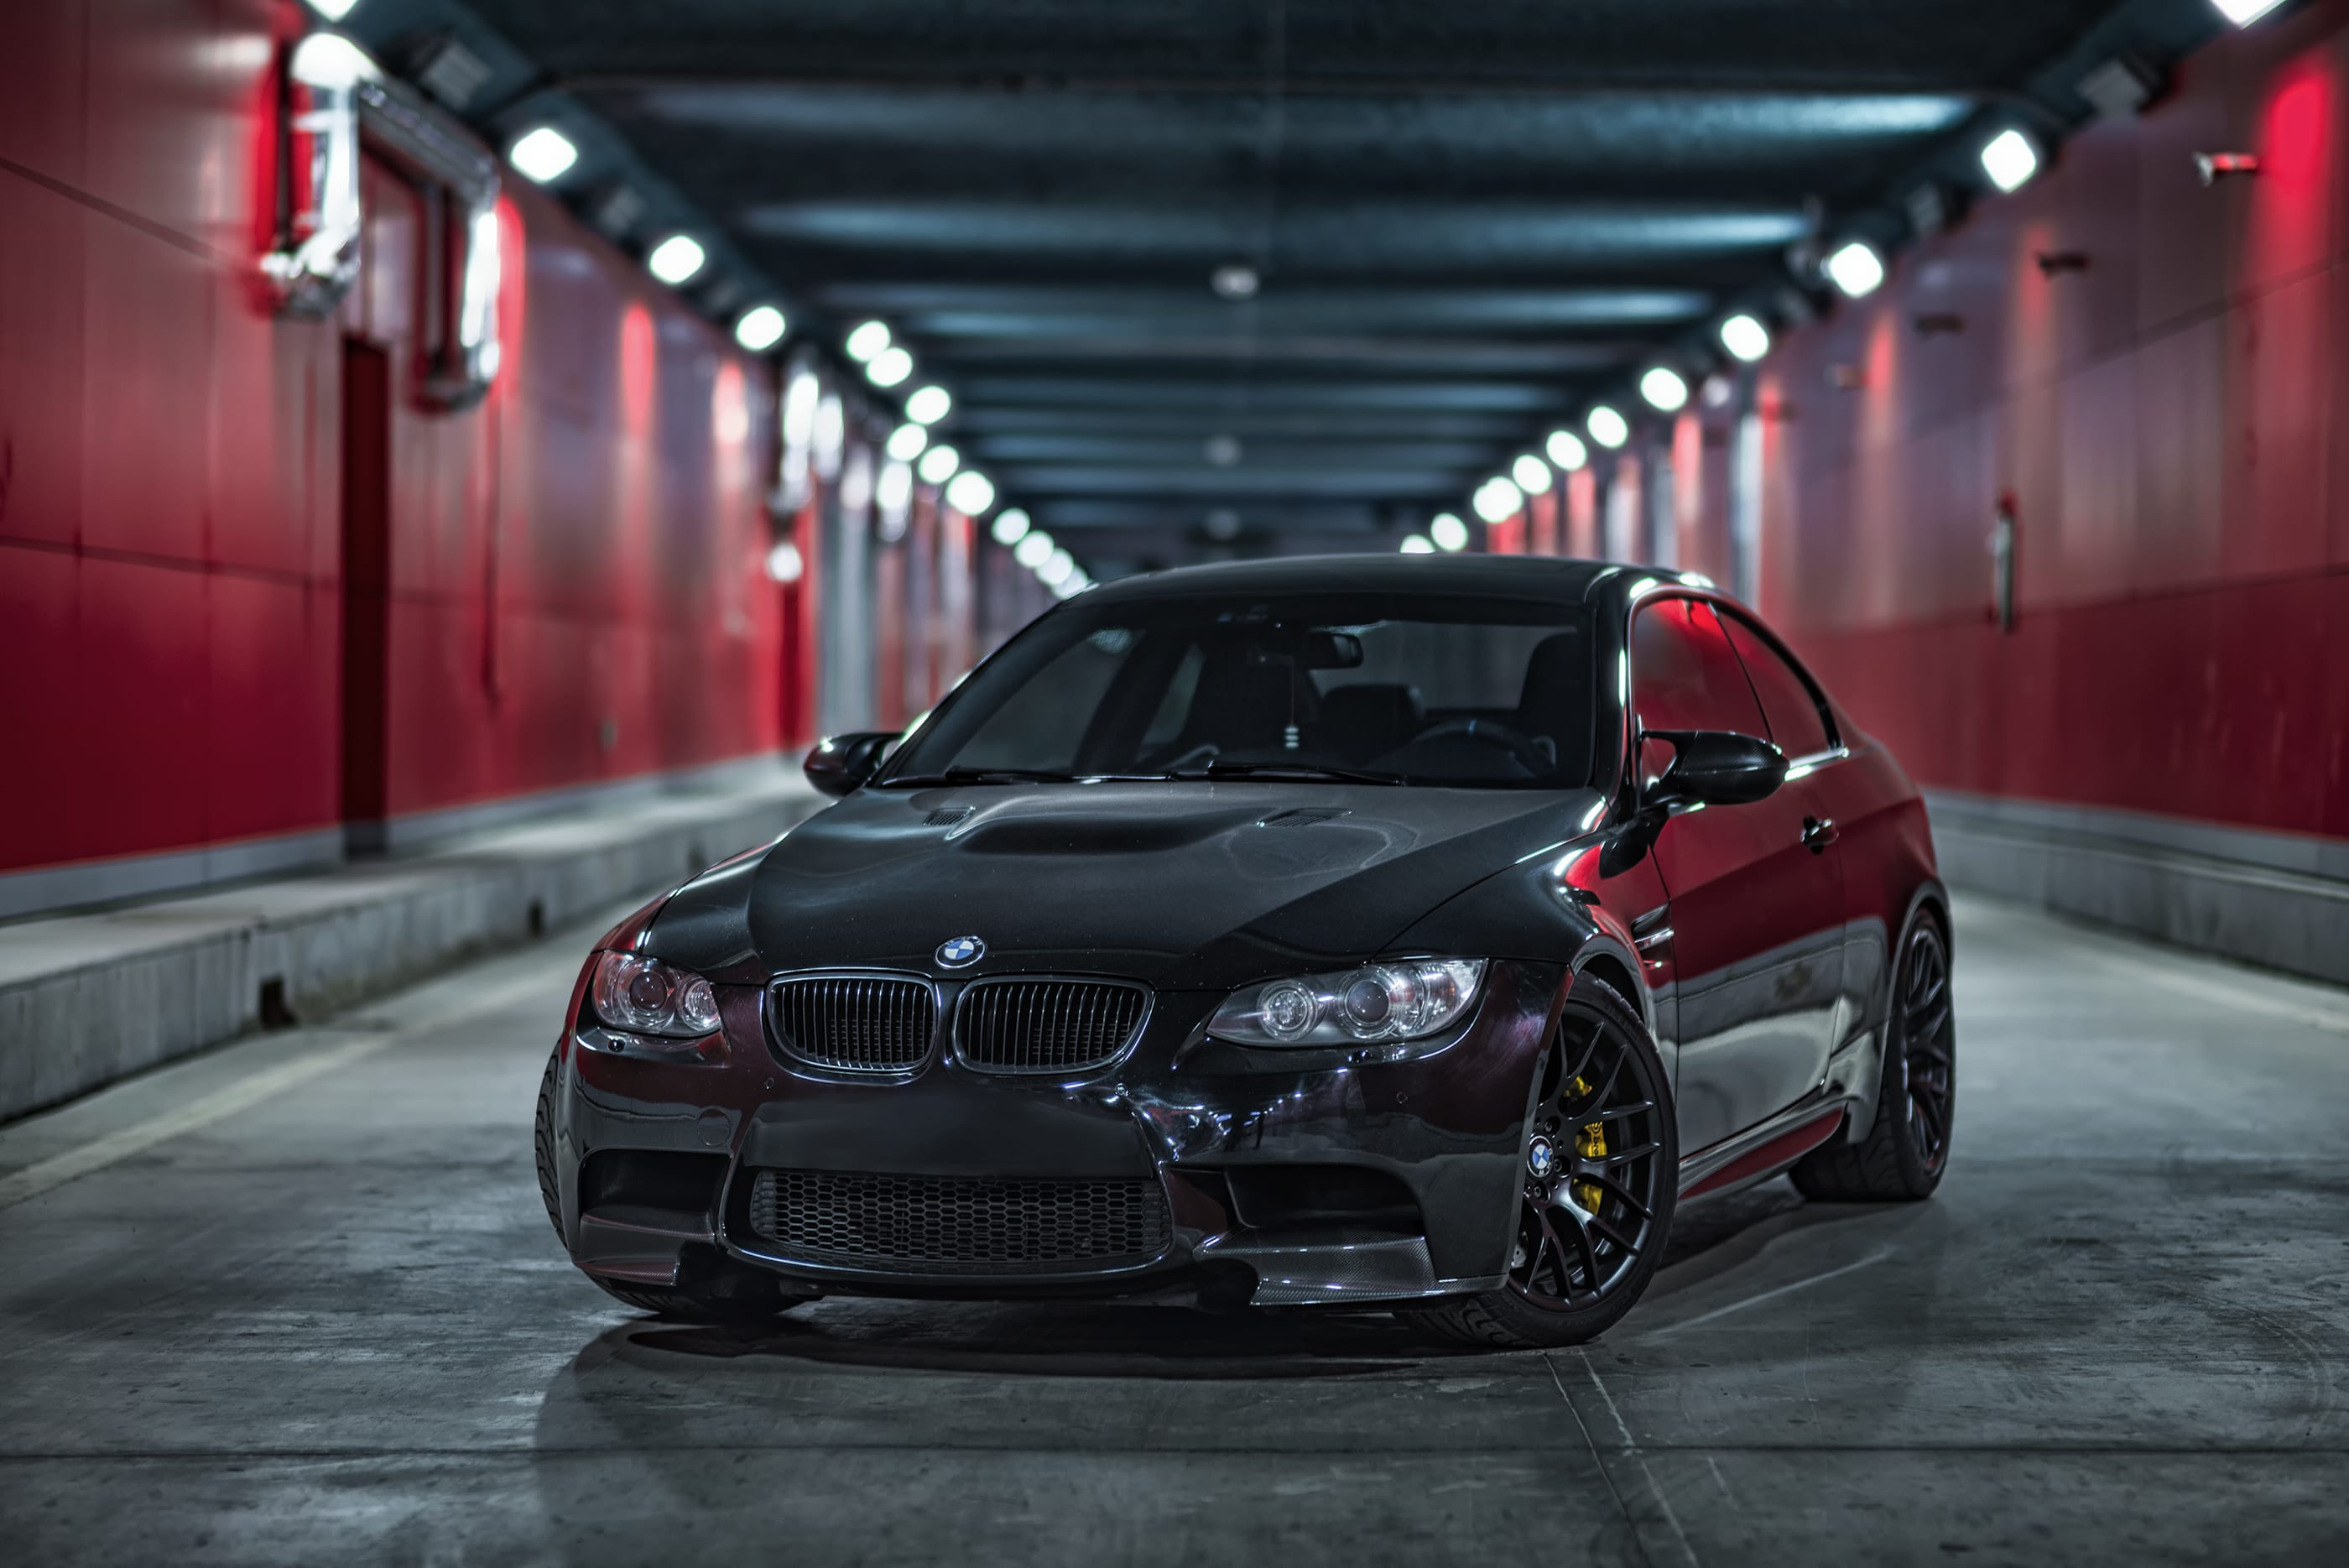 BMW recalls 2016 M3 and M4 over drive shaft issue